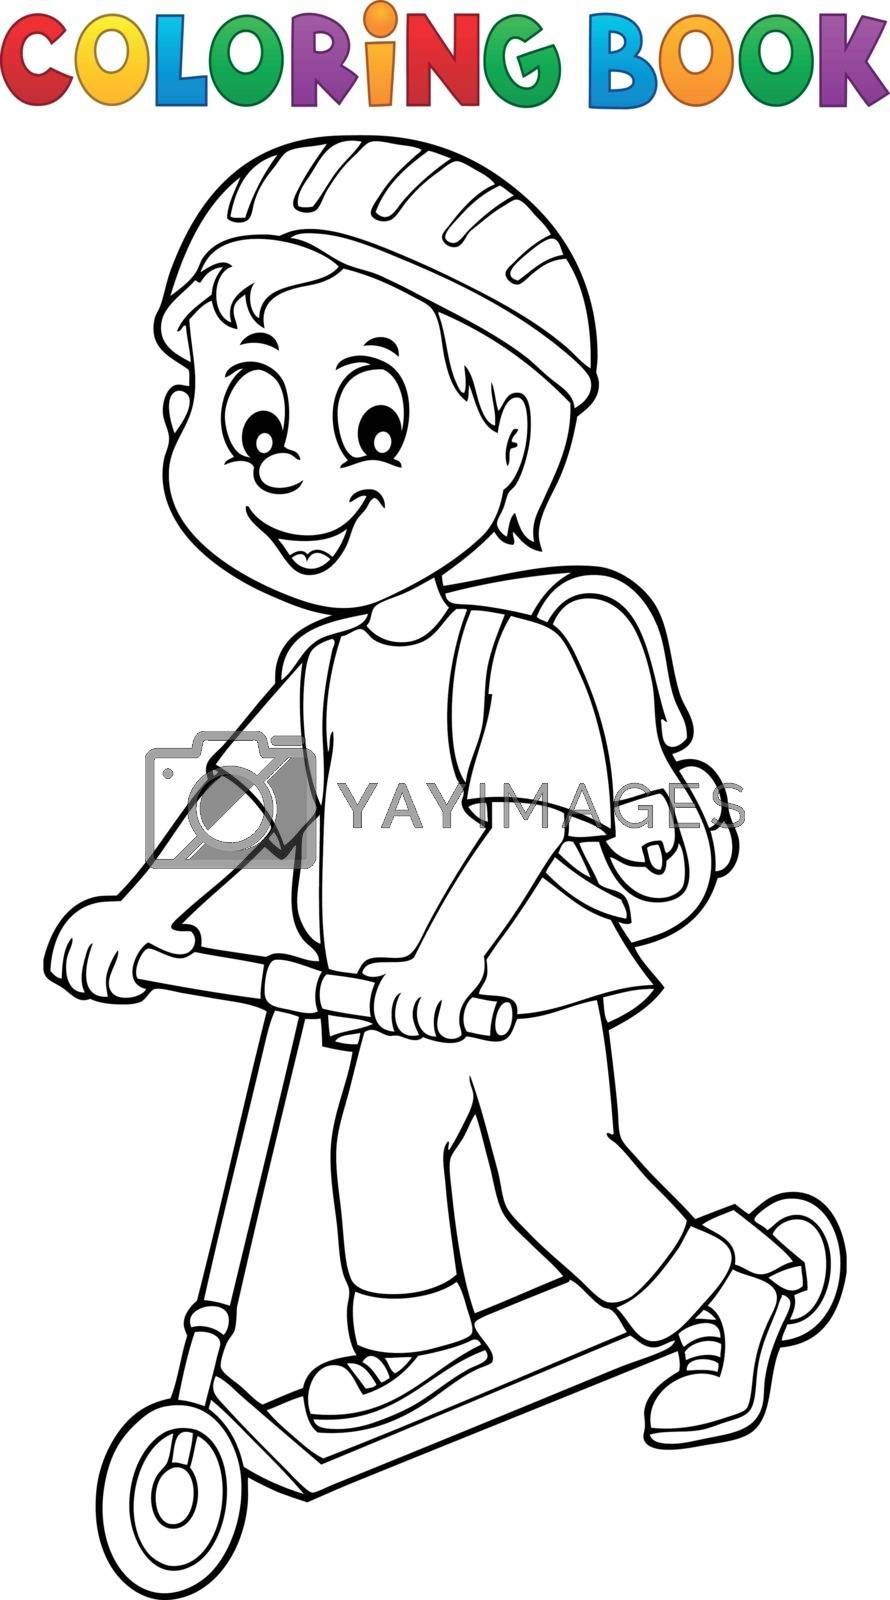 Coloring book boy on kick scooter theme 1 - eps10 vector illustration.